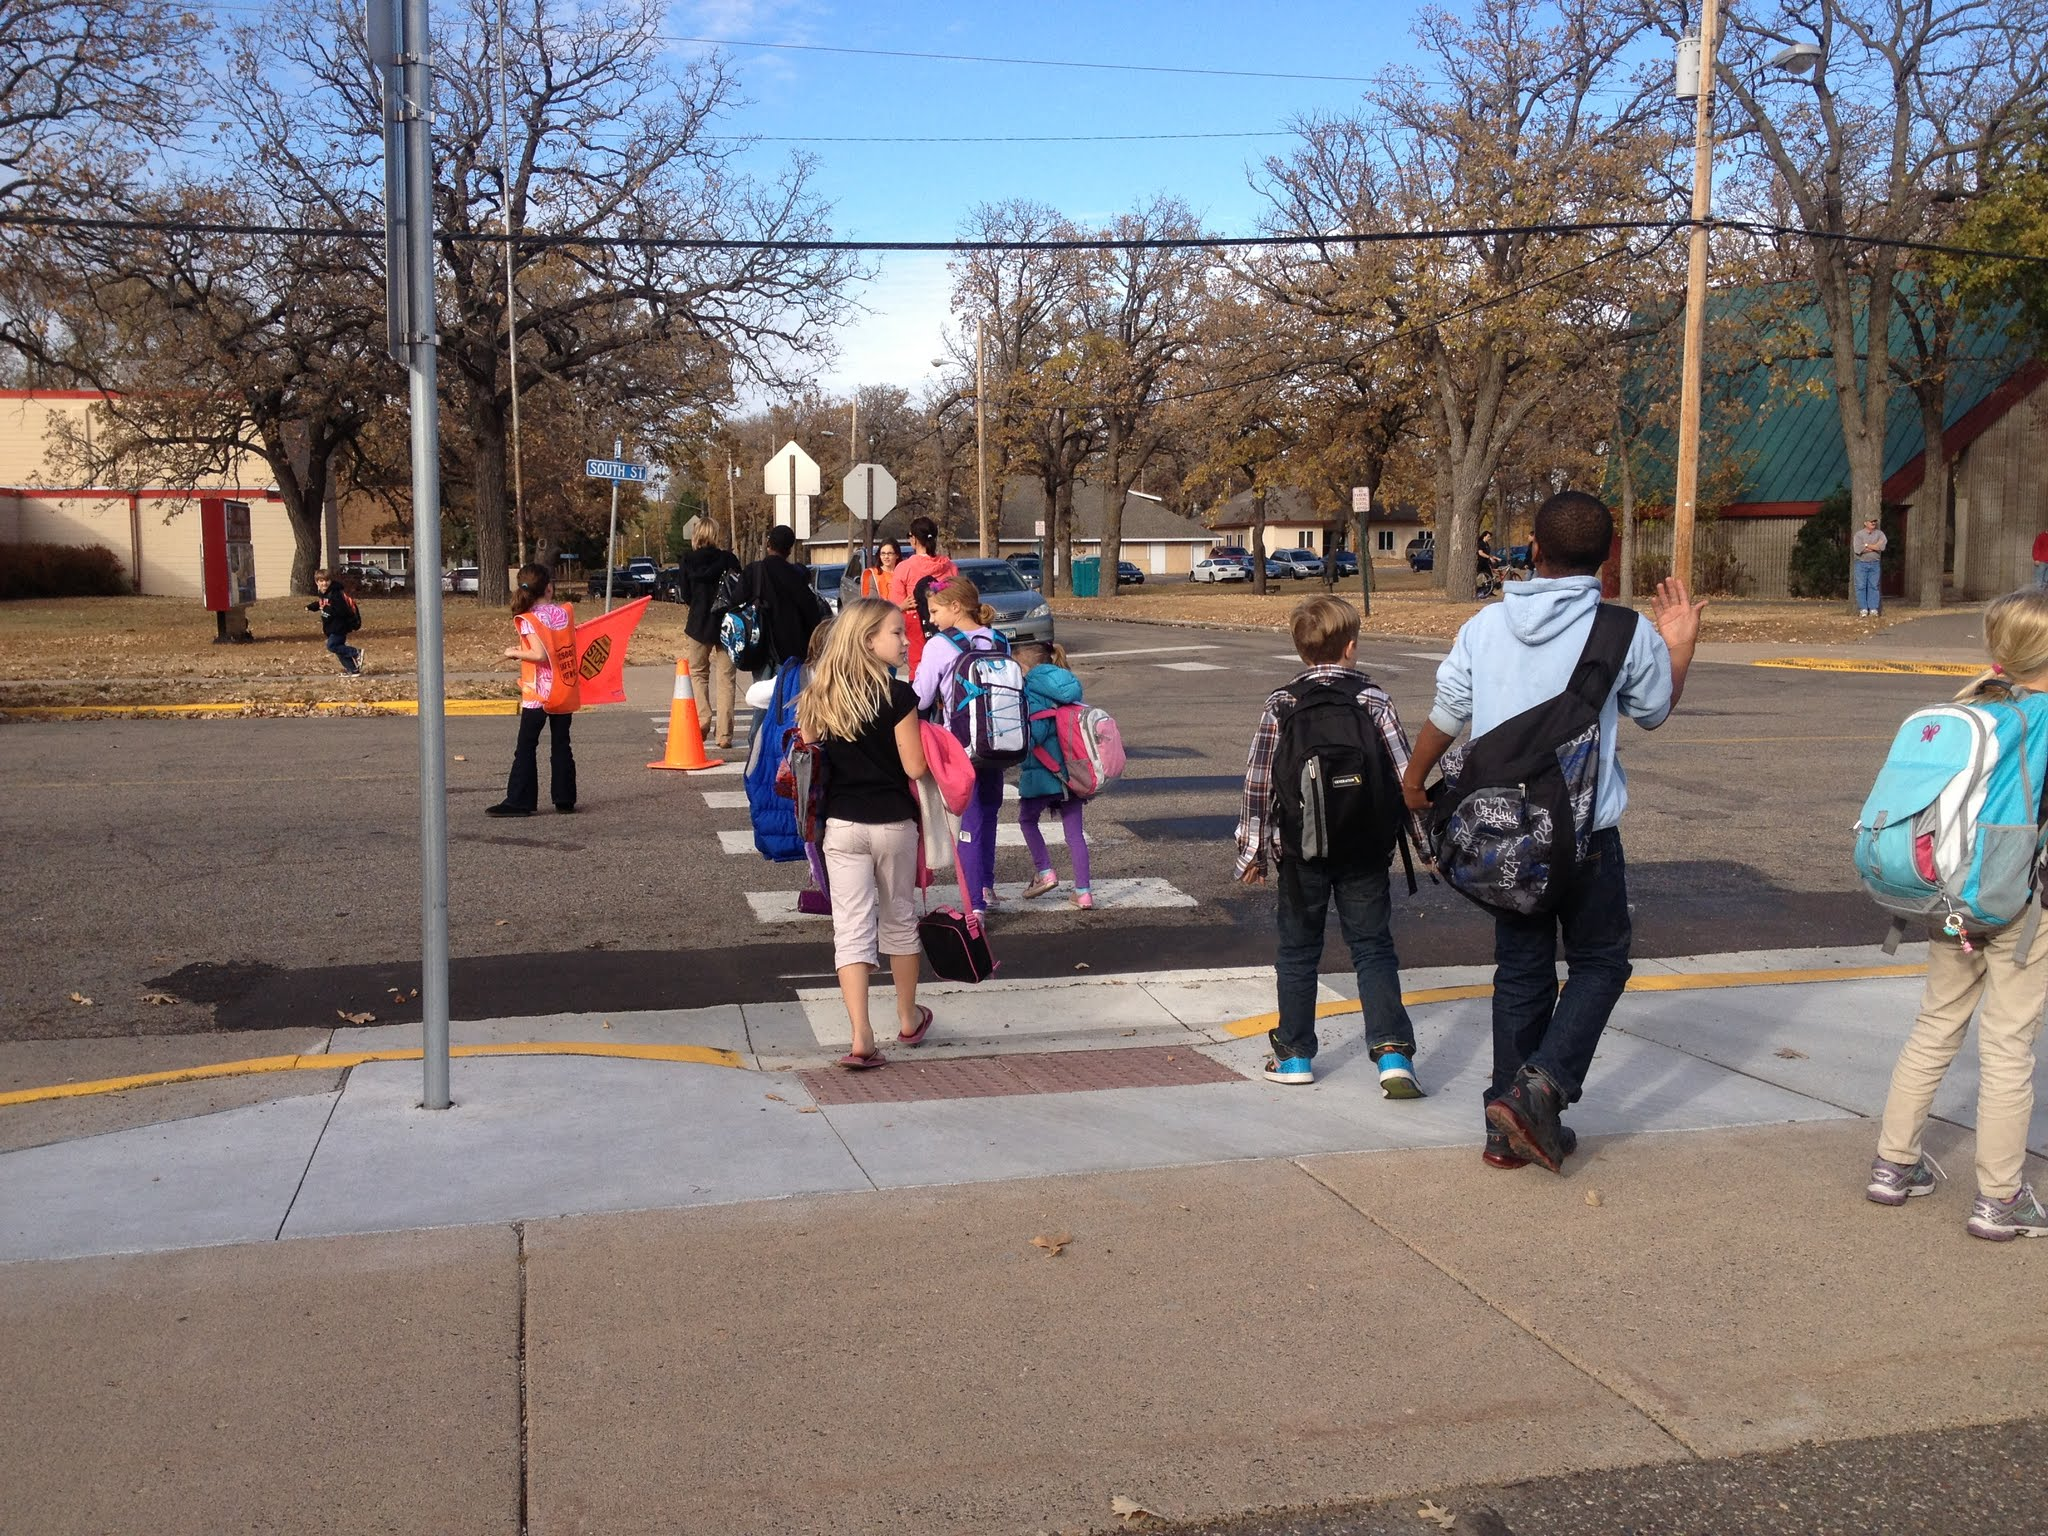 Children crossing a street in a crosswalk with help from a crossing guard